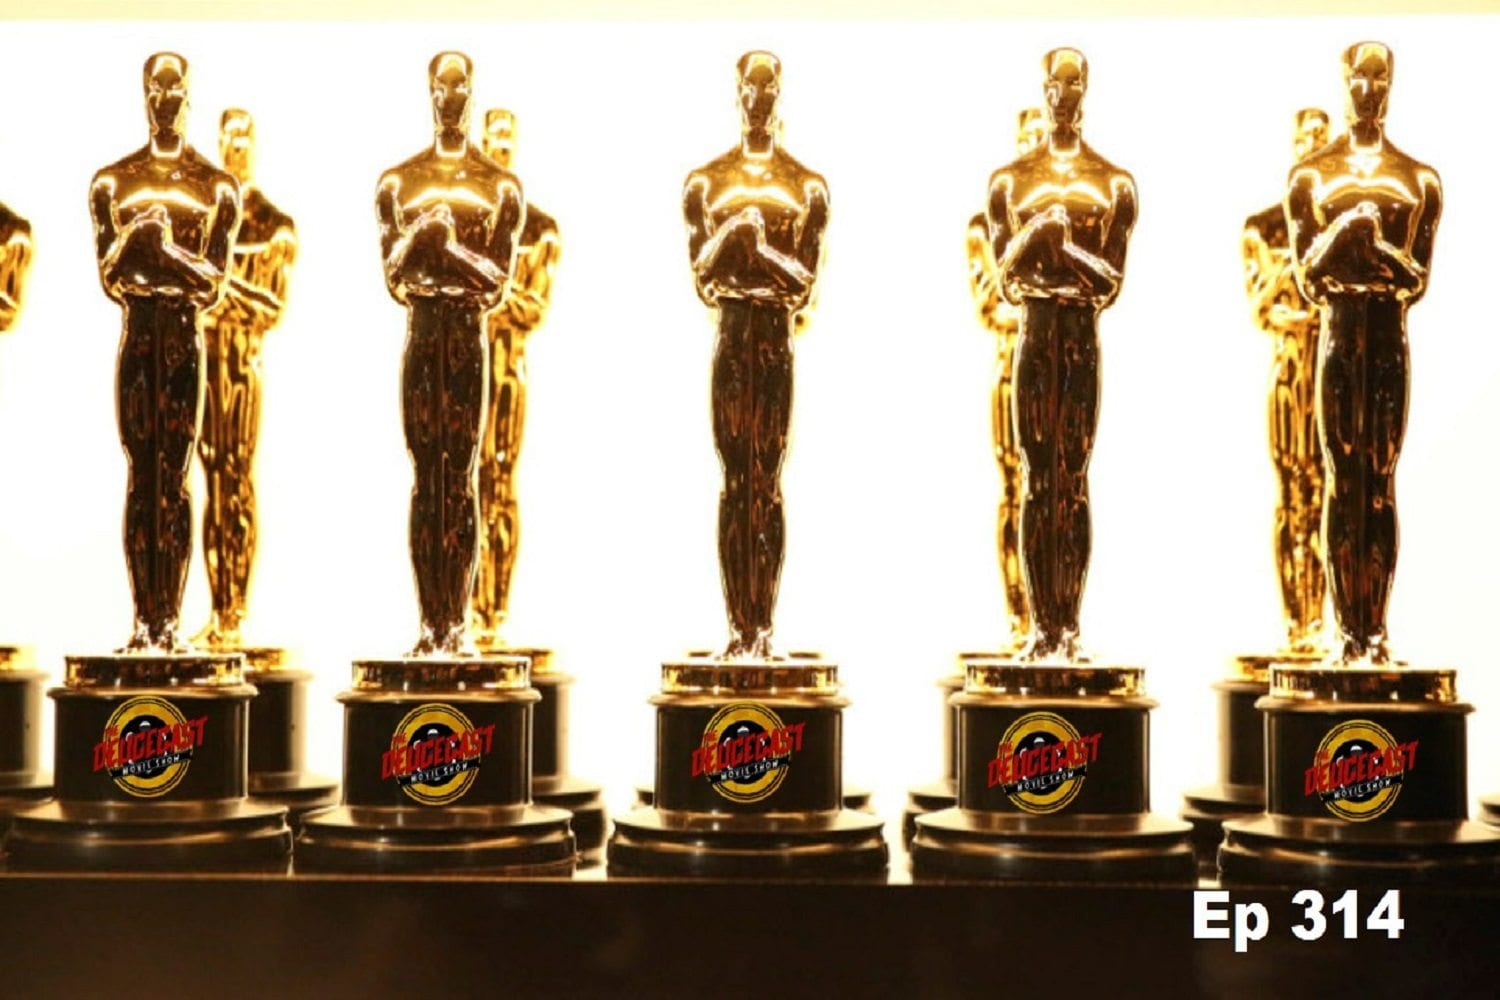 The Deucecast Movie Show #314: The Oscar Nominees Are...